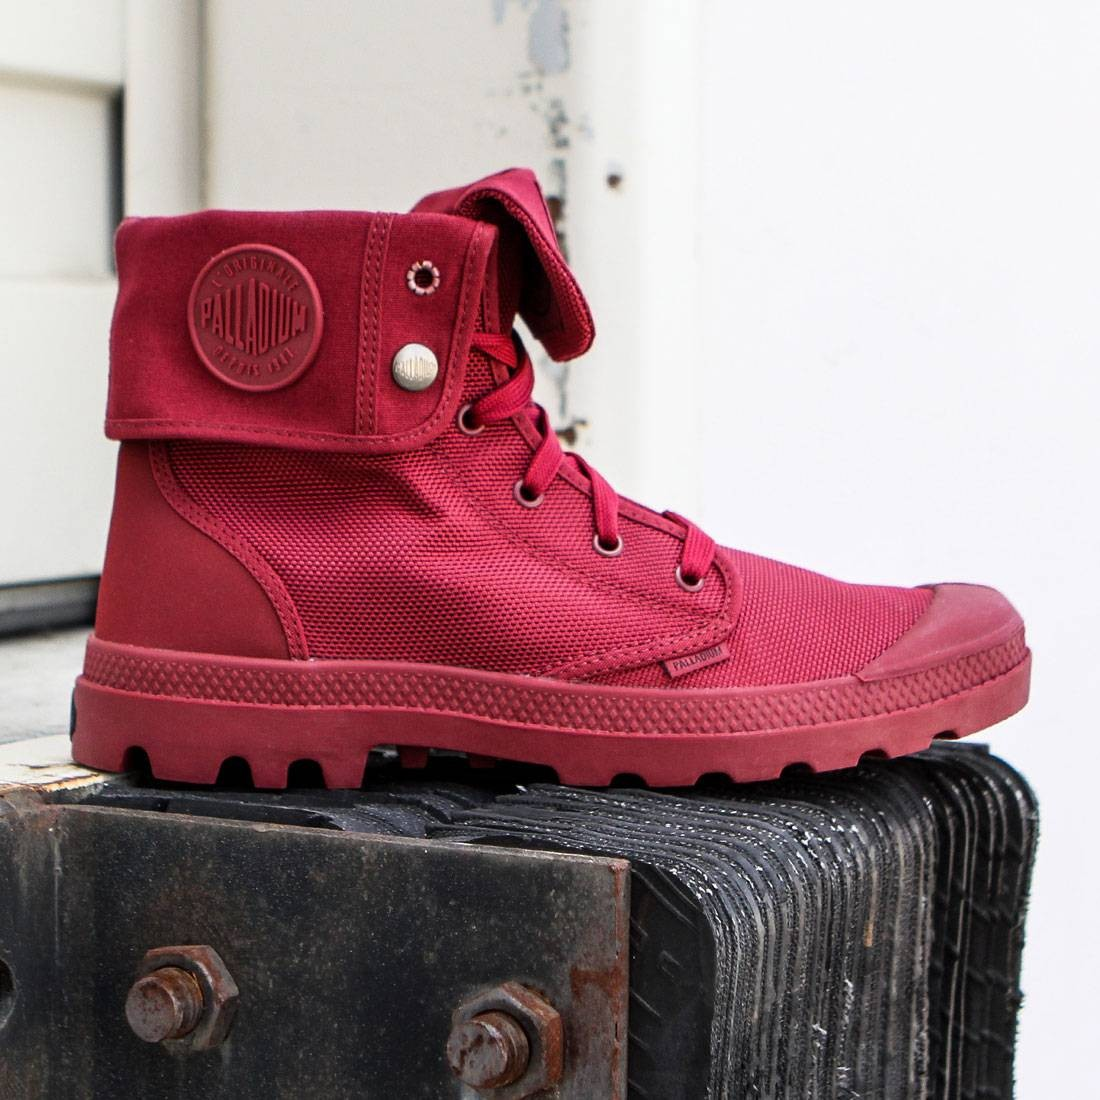 【海外限定】パラディウム メンズ靴 靴 【 PALLADIUM BOOTS MEN BAGGY II MONOCHROME BURGUNDY MAROON 】